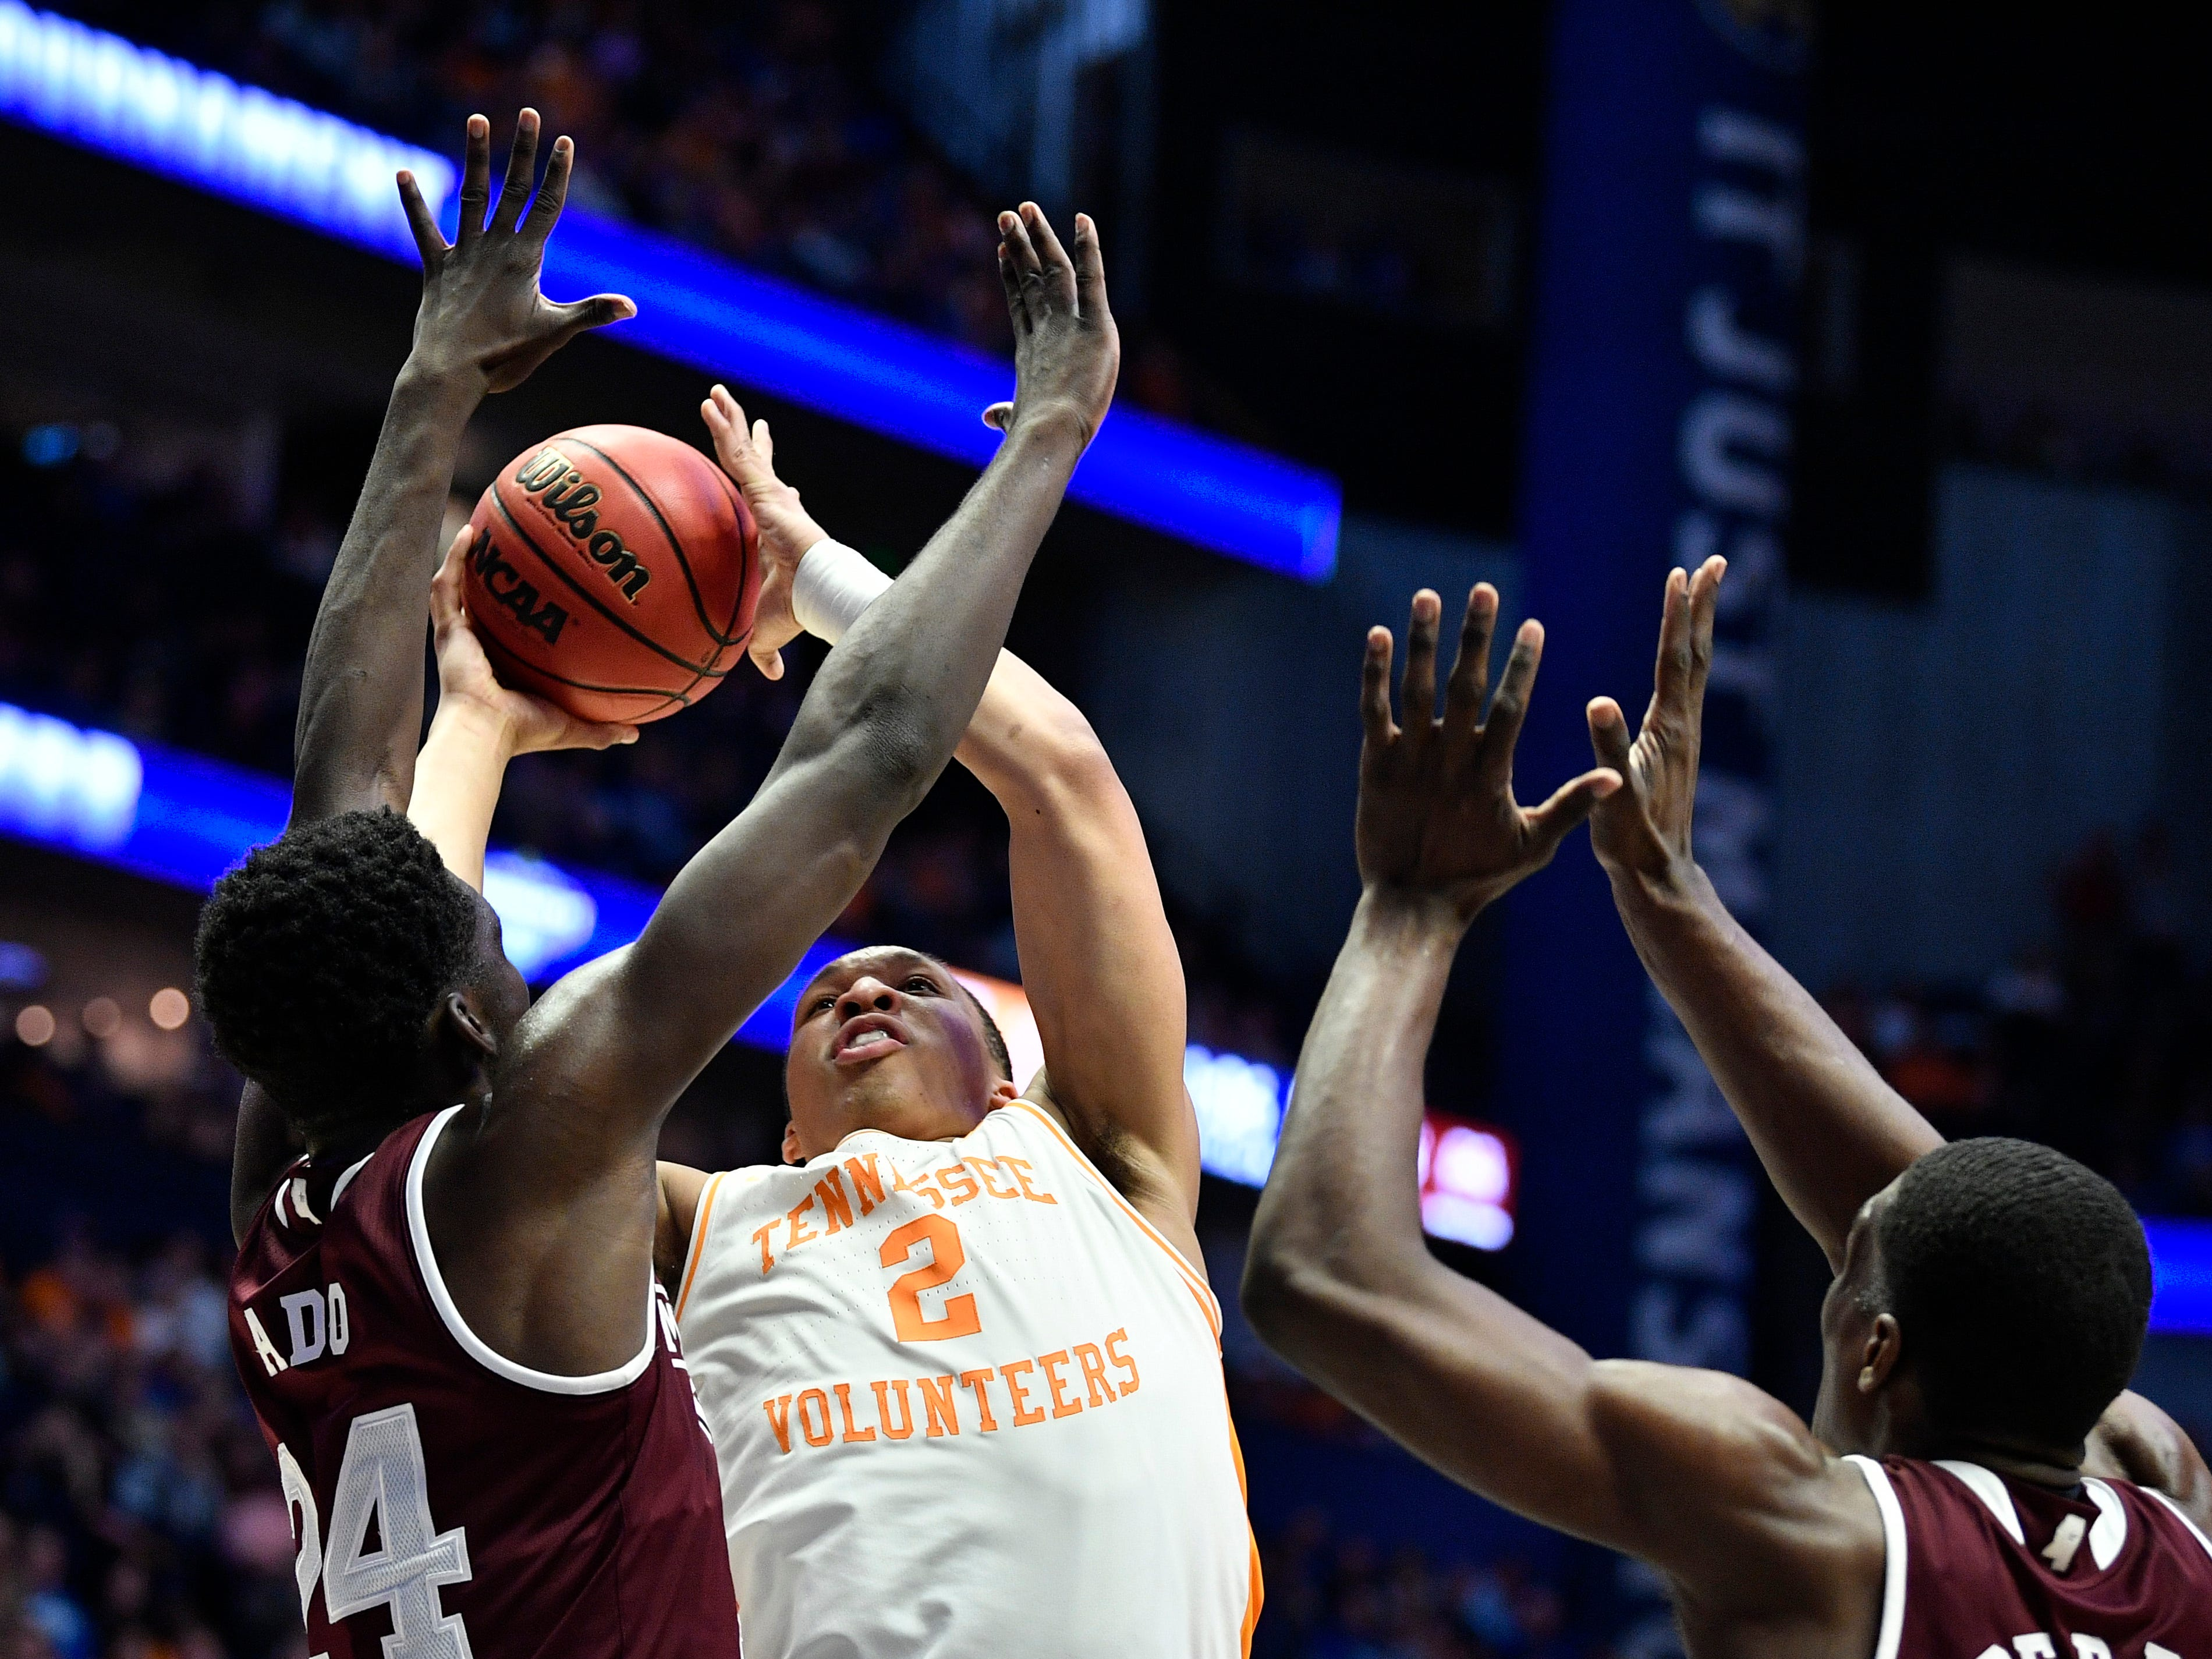 Tennessee forward Grant Williams (2) goes up for a shot defended by Mississippi State forwards Abdul Ado (24) and Reggie Perry (1) during the first half of the SEC Men's Basketball Tournament game at Bridgestone Arena in Nashville, Tenn., Friday, March 15, 2019.